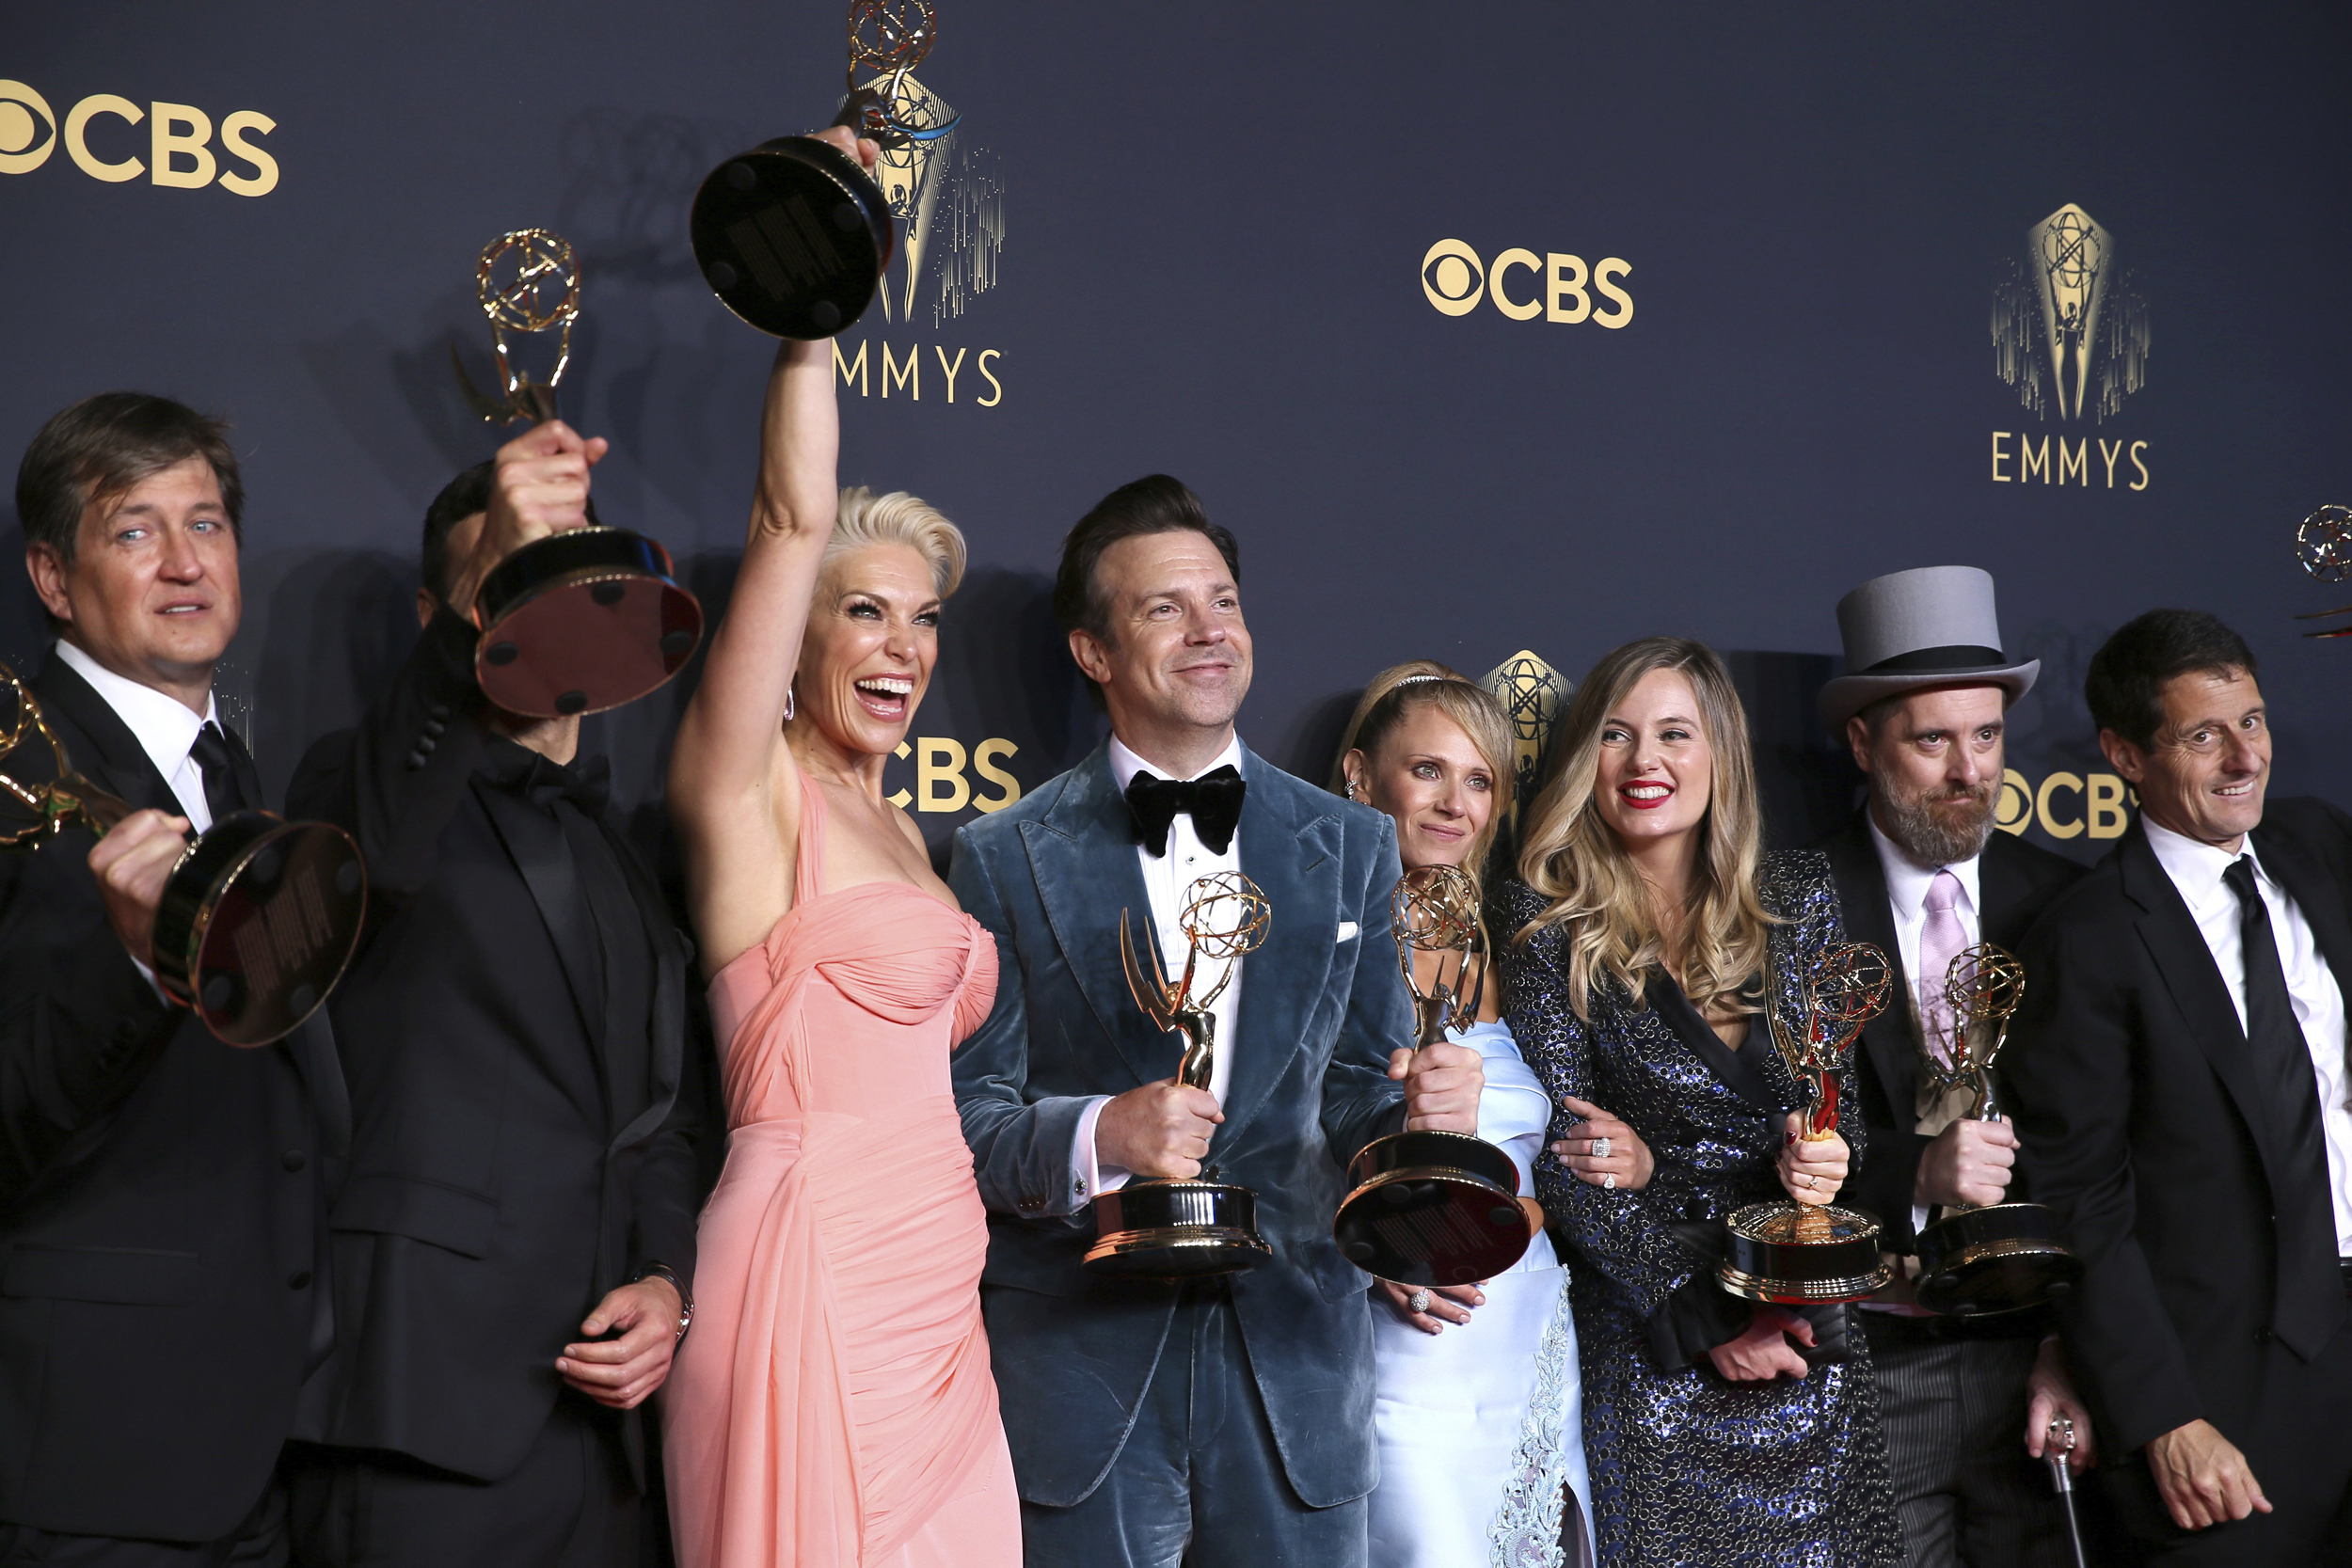 'Ted Lasso' wins big, performers of color shut out: 5 key takeaways from the Emmys